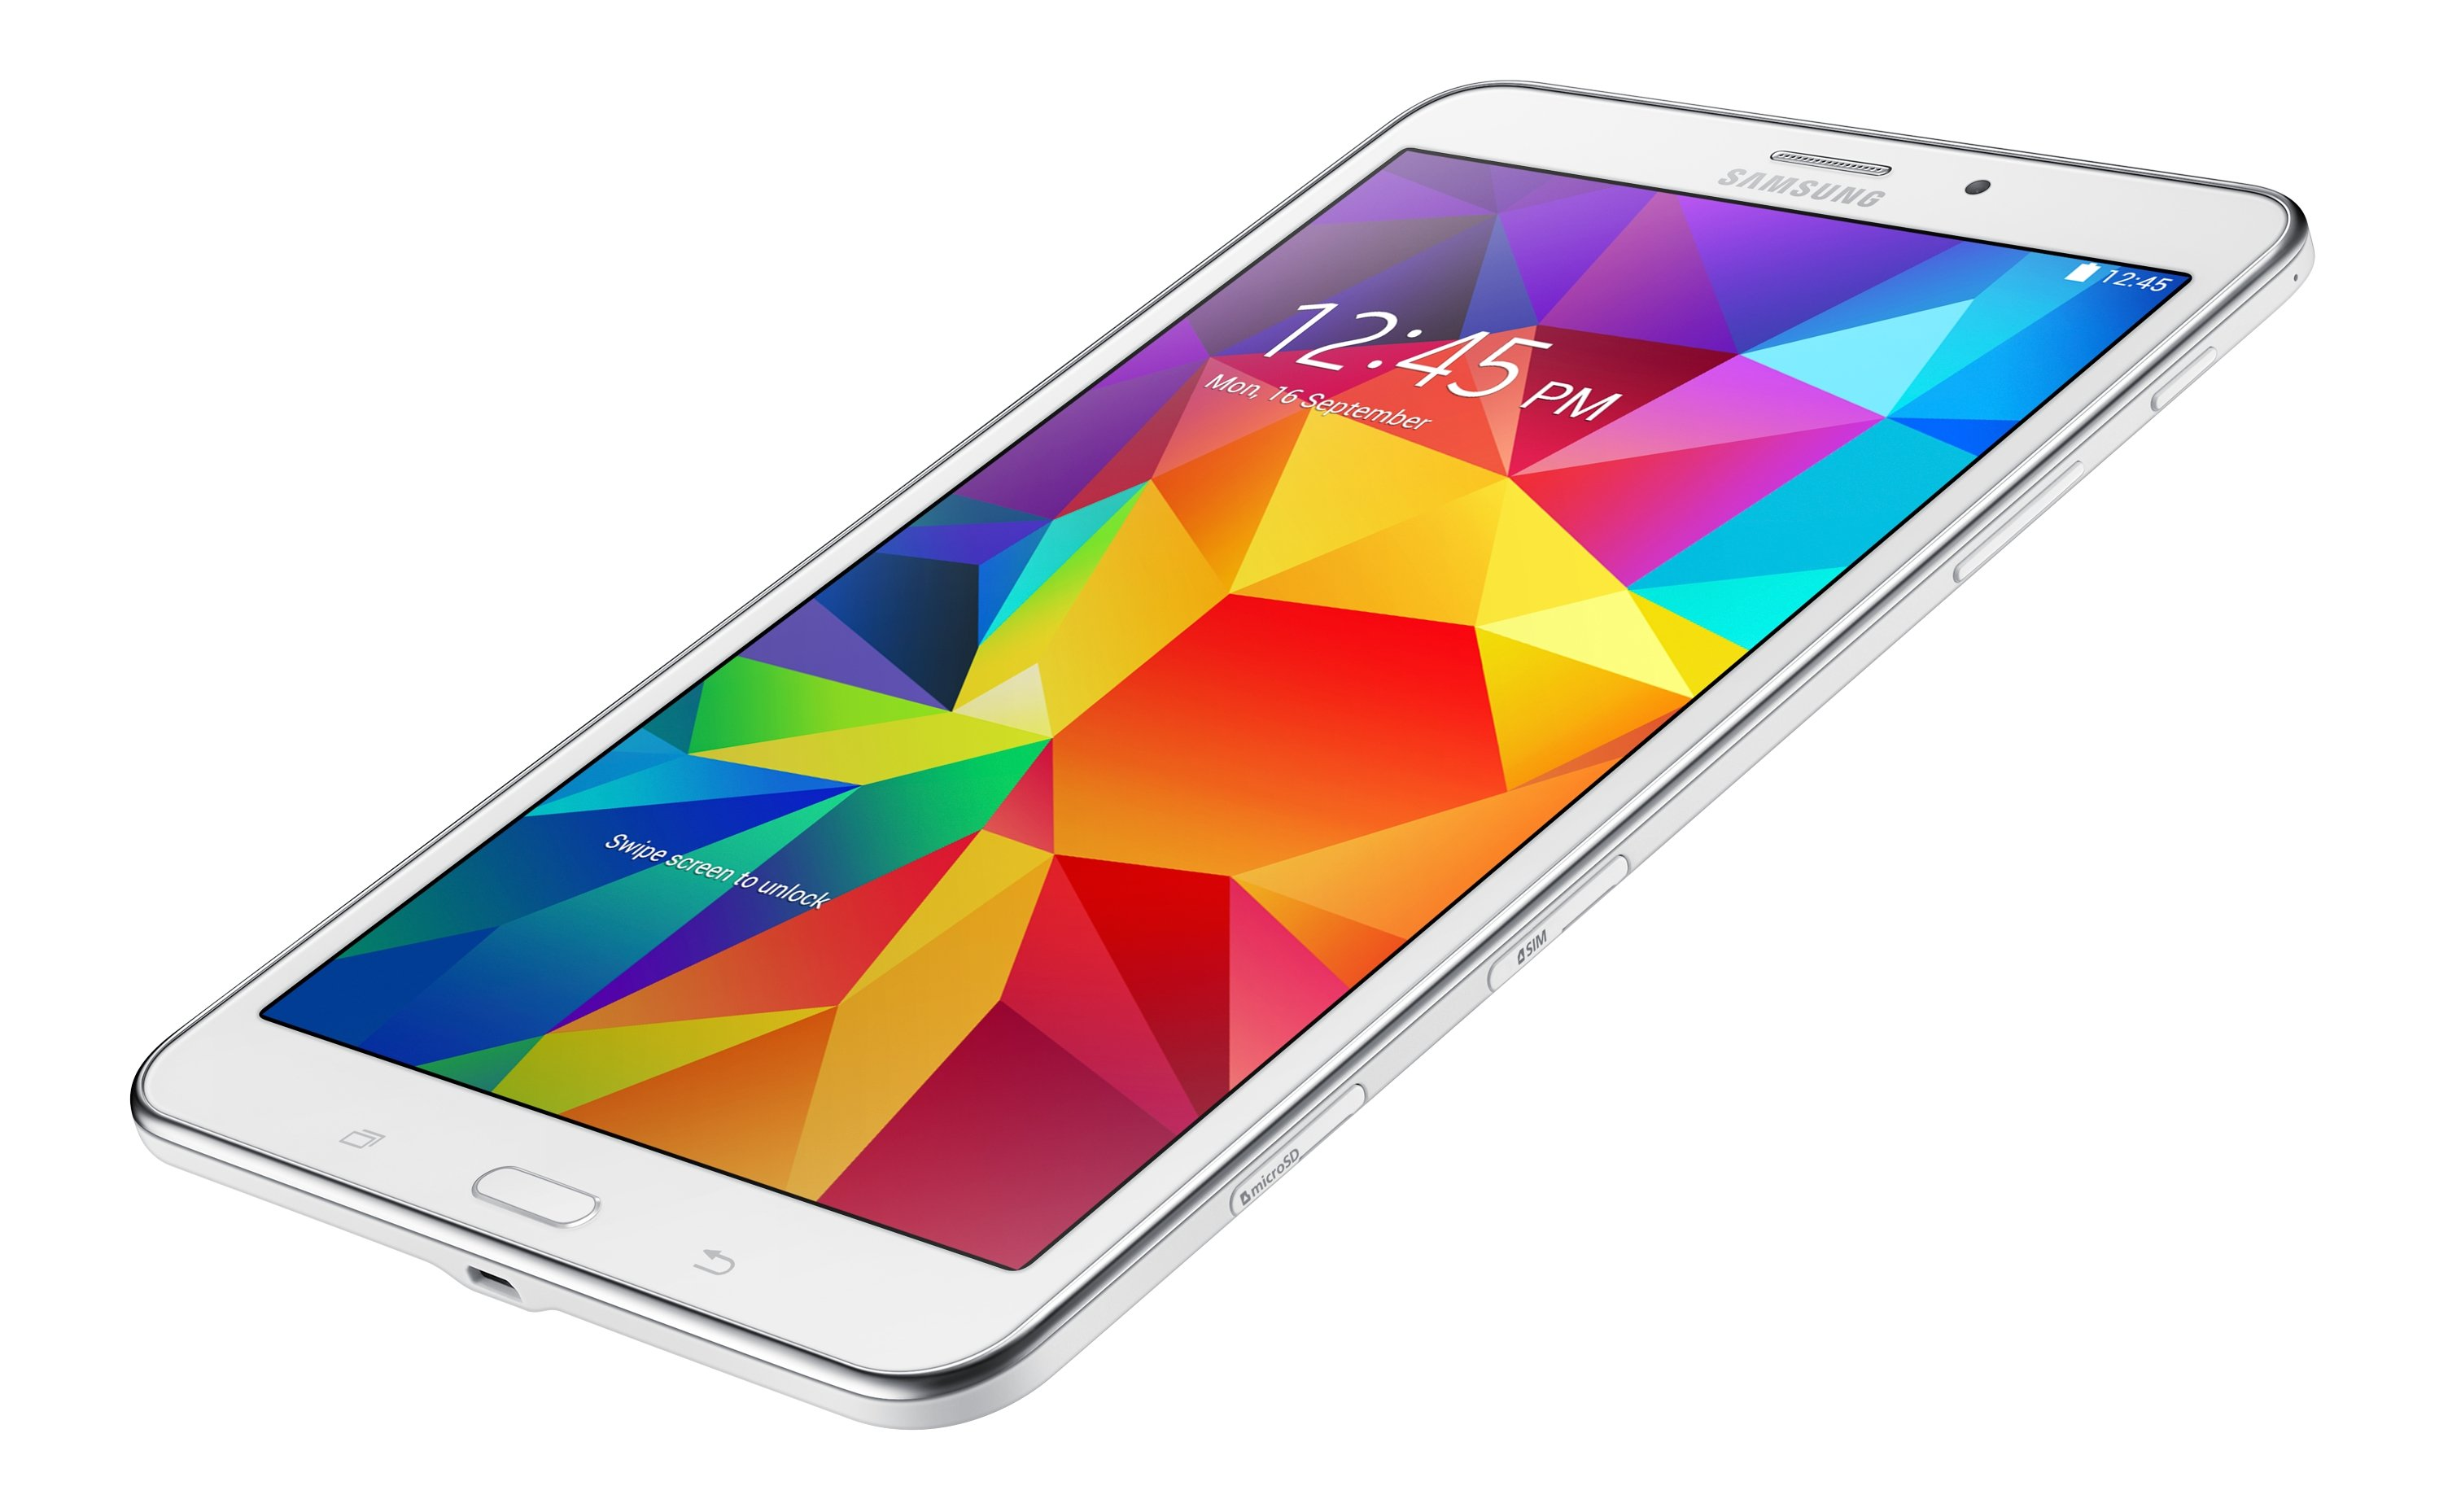 Samsung Galaxy Tab 4 8 0 review: A competent budget tablet